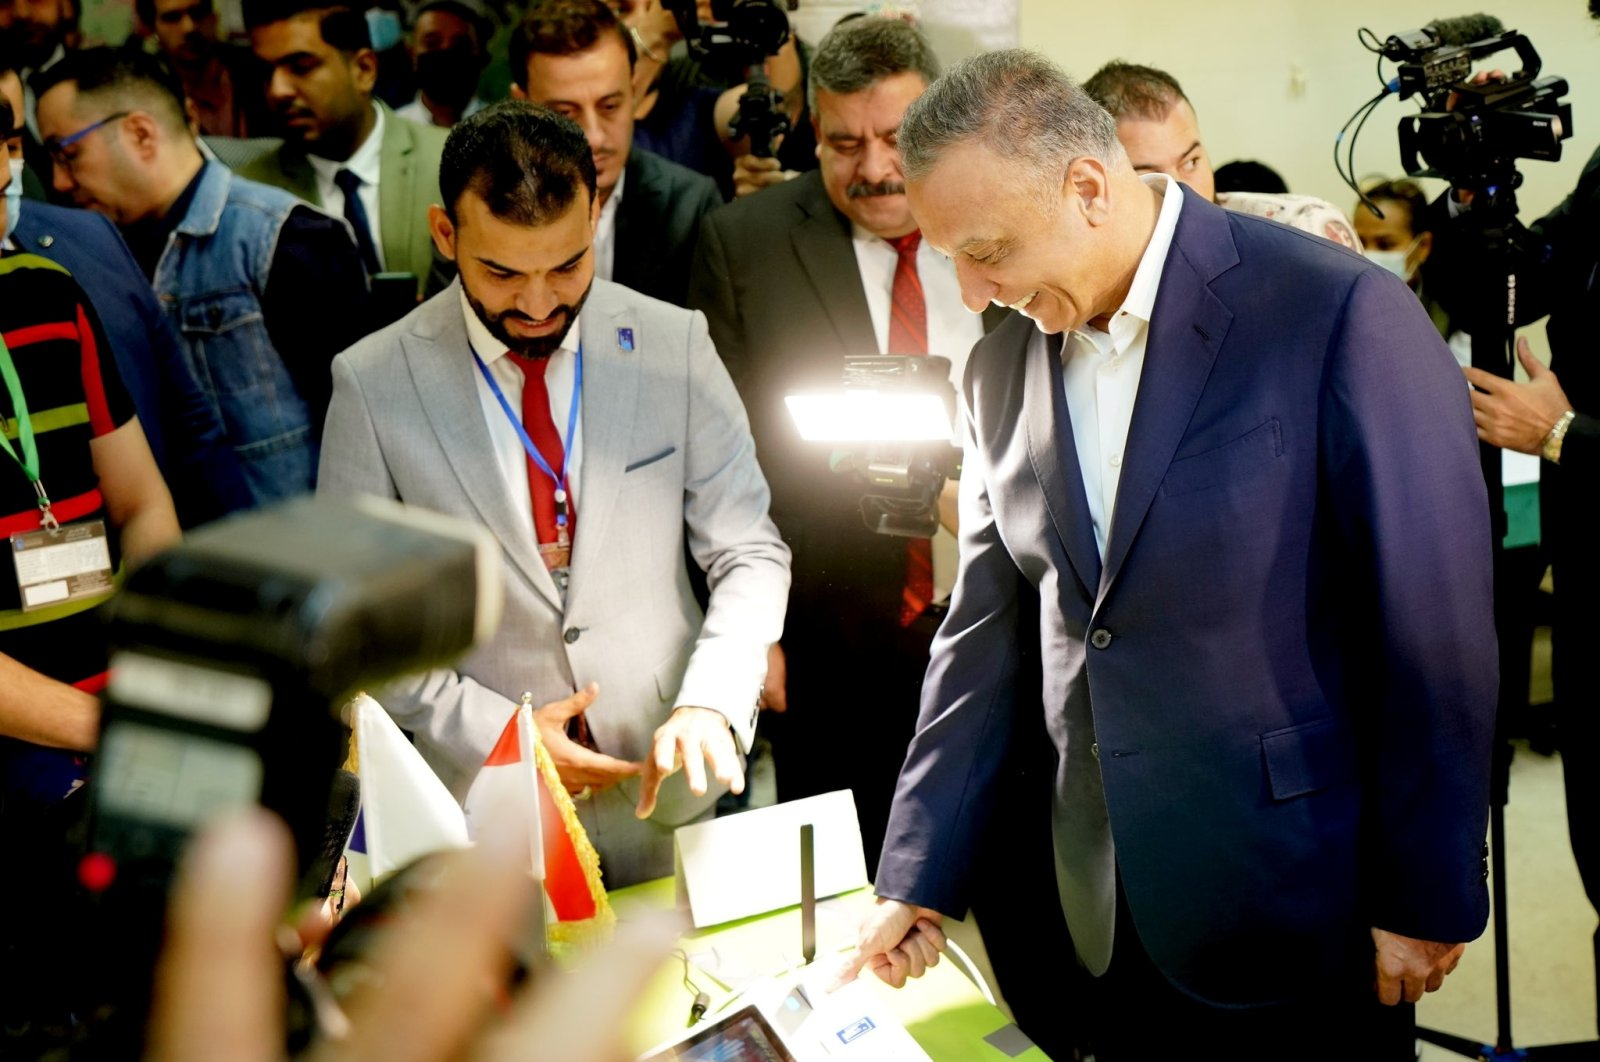 Iraqi Prime Minister Mustafa al-Kadhimi casts his vote at the polling station in the Green Zone, as Iraqis go to the polls to vote in the parliamentary election, Baghdad, Iraq, Oct. 10, 2021. (Iraqi Prime Minister Media Office via Reuters)